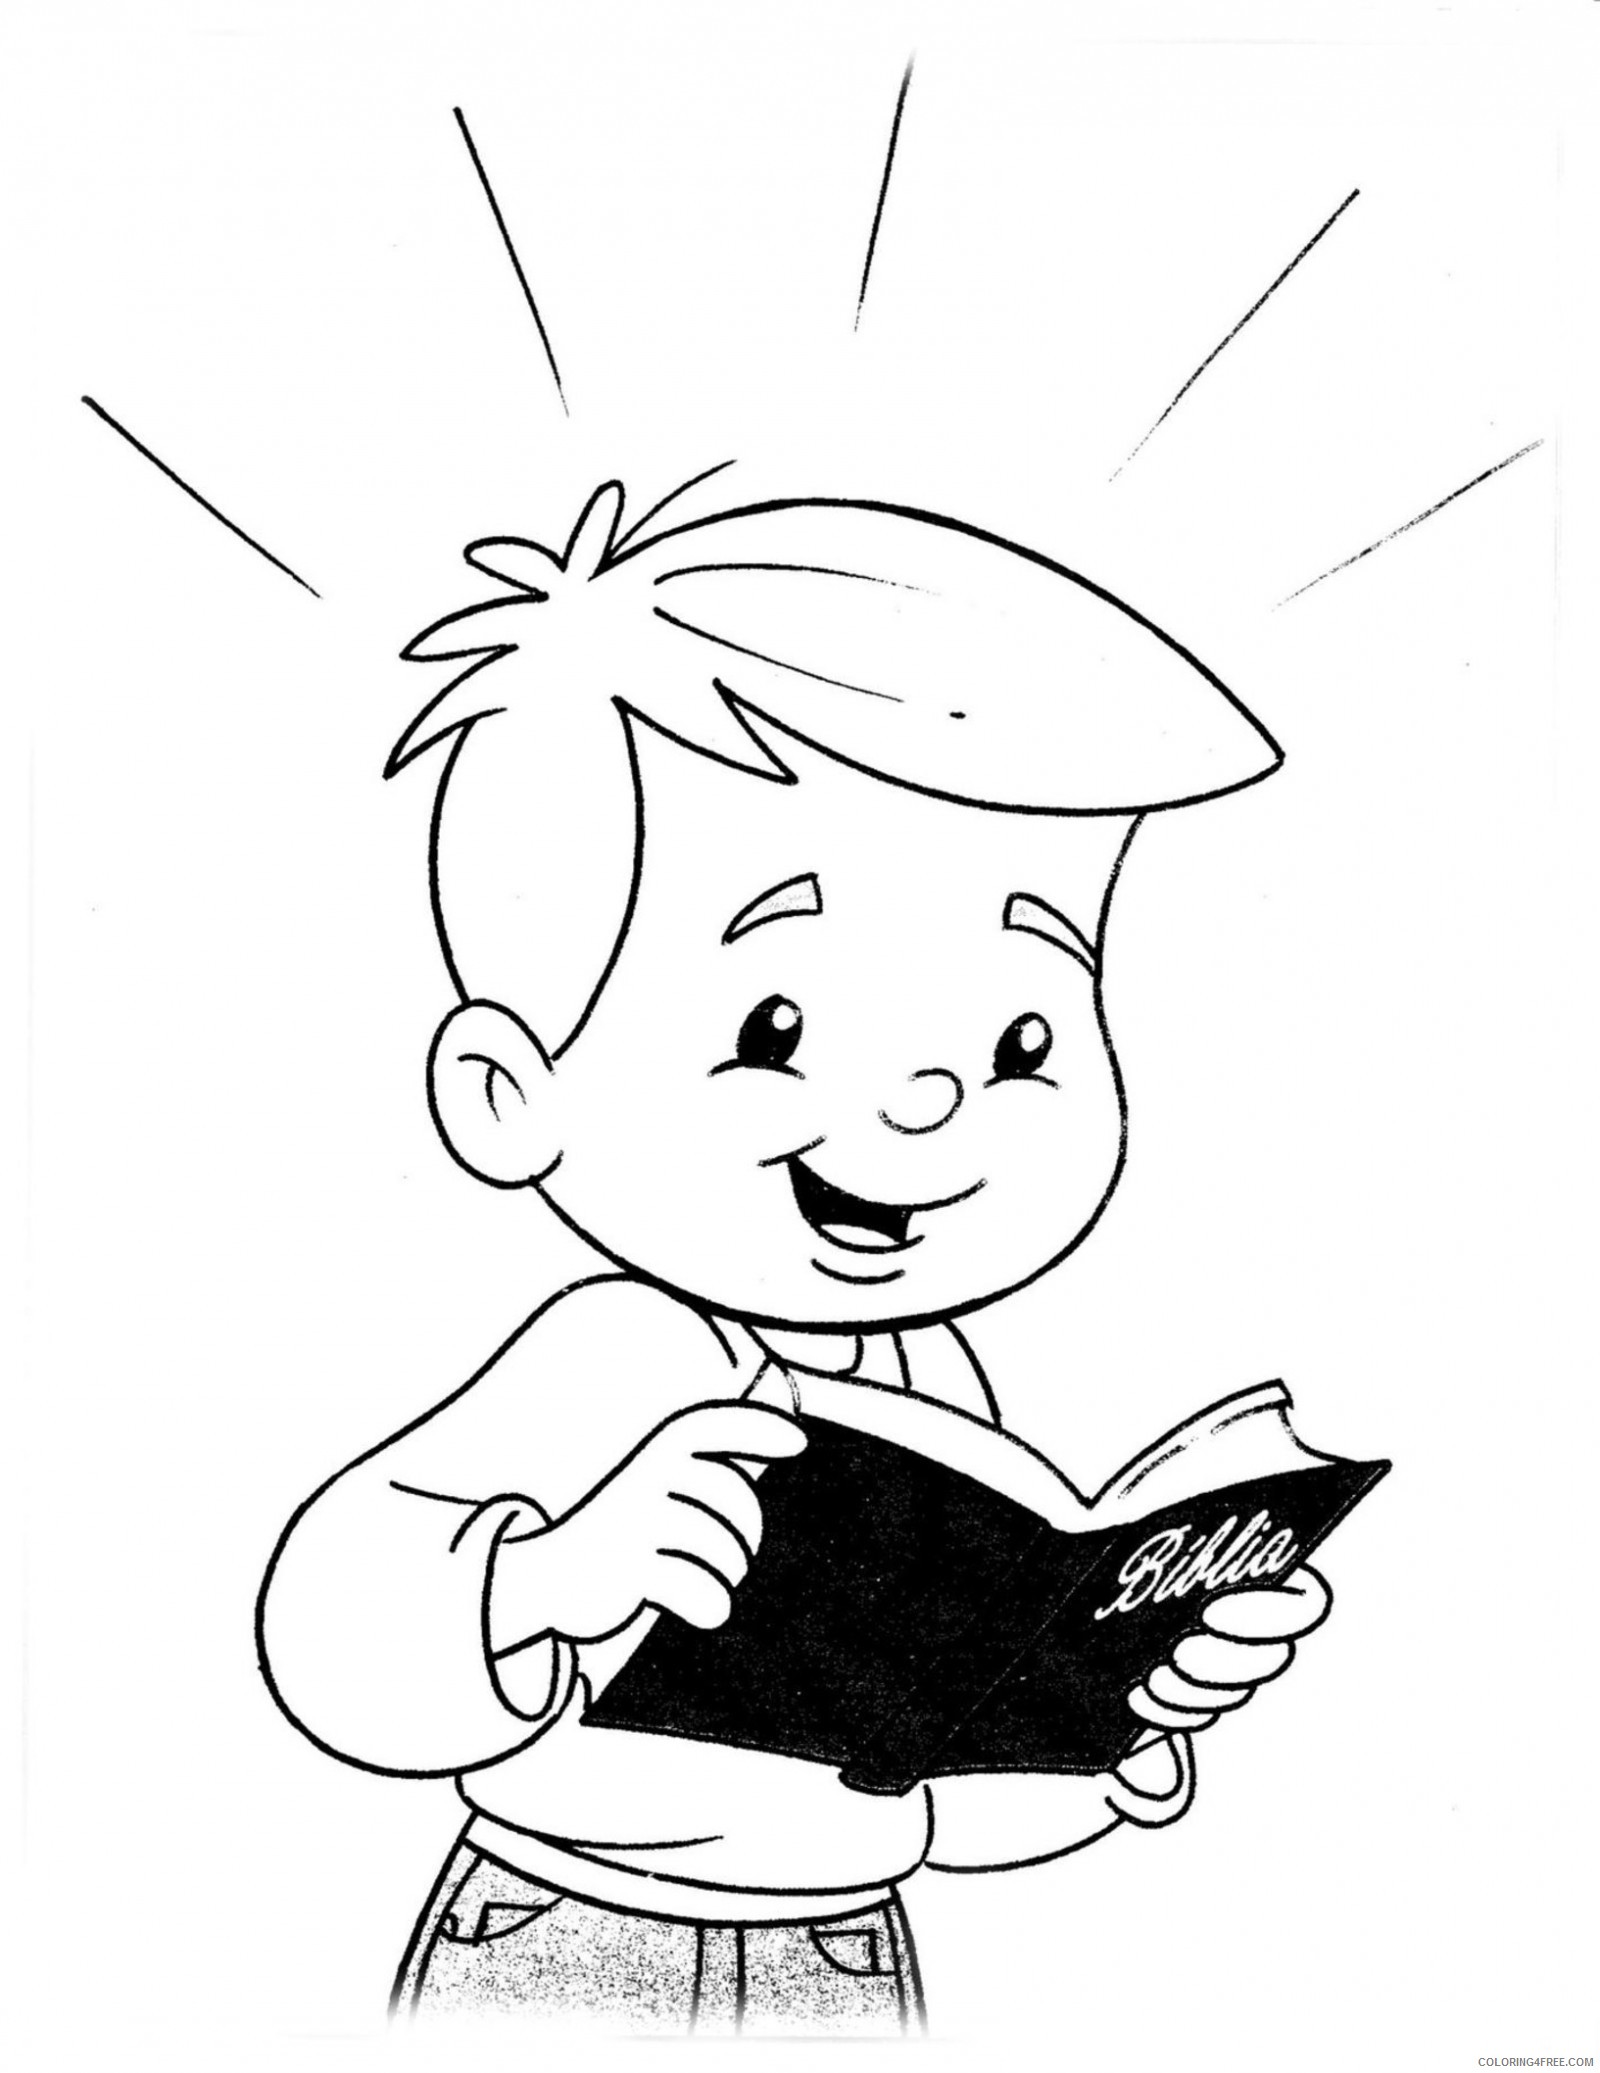 kid reading bible coloring pages Coloring4free